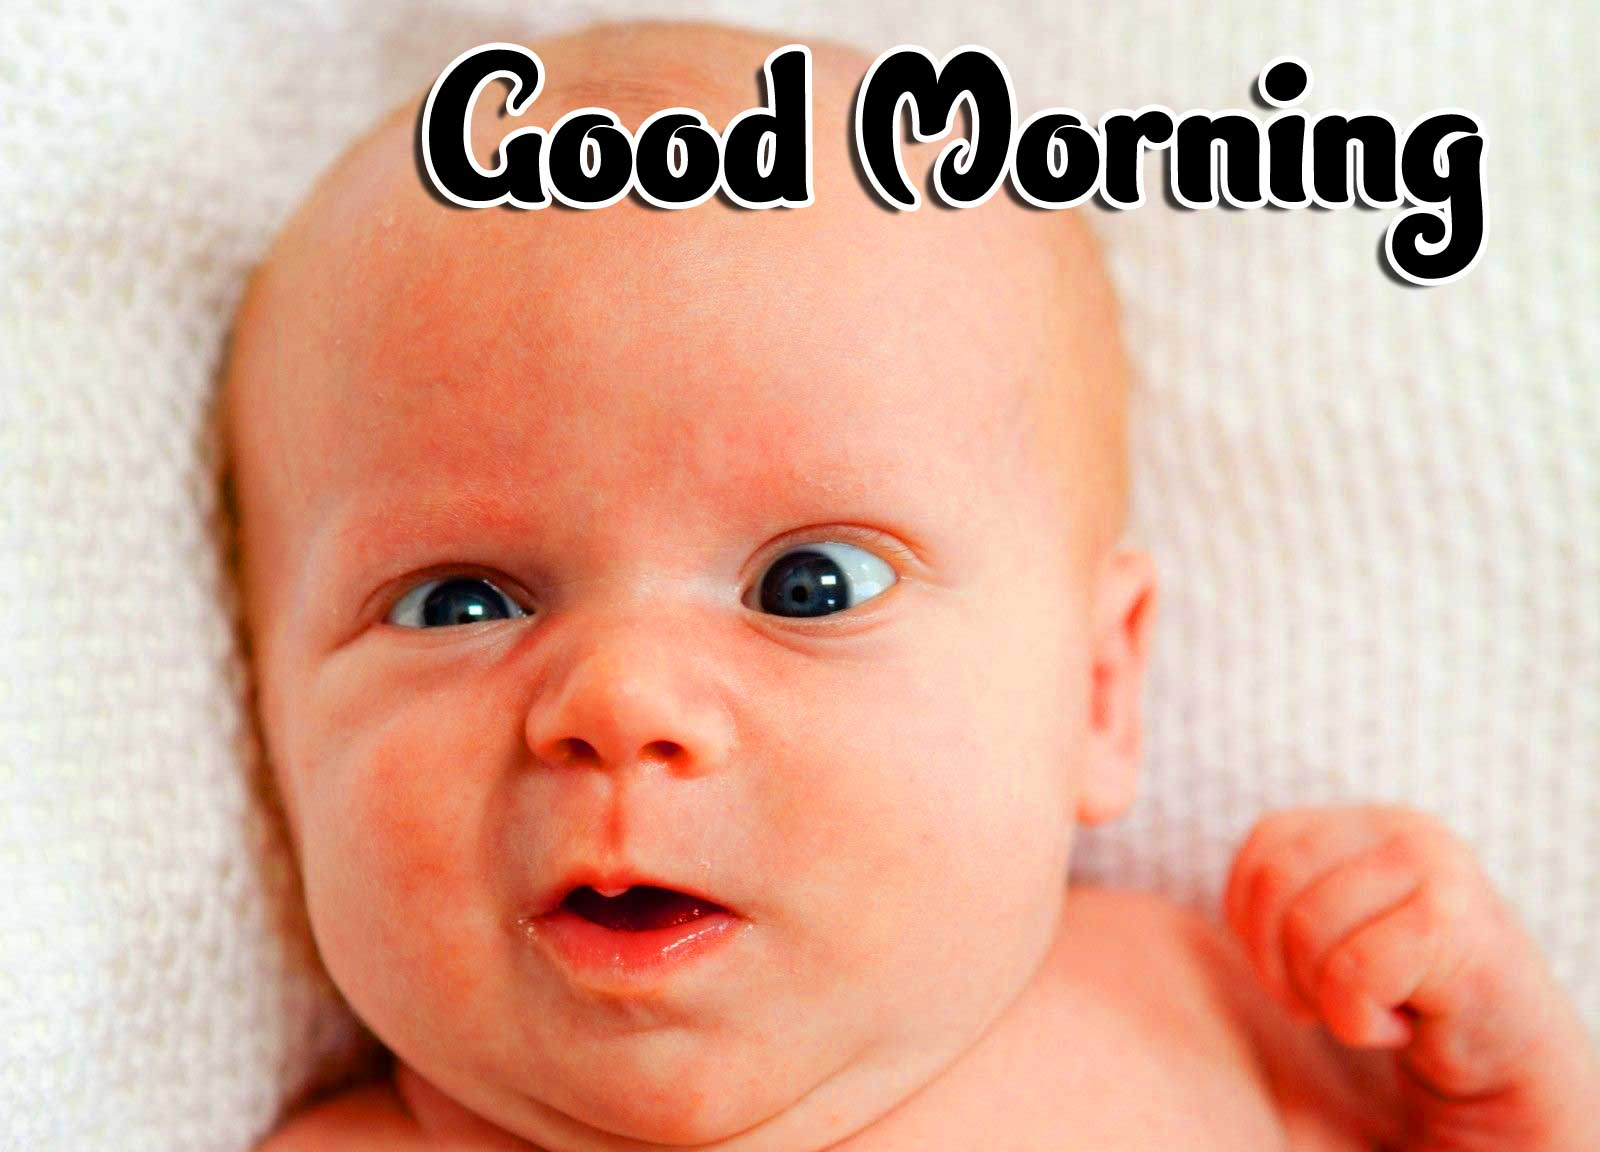 Cute Baby Boys & Girls Good Morning Images Pics Download for Whatsapp